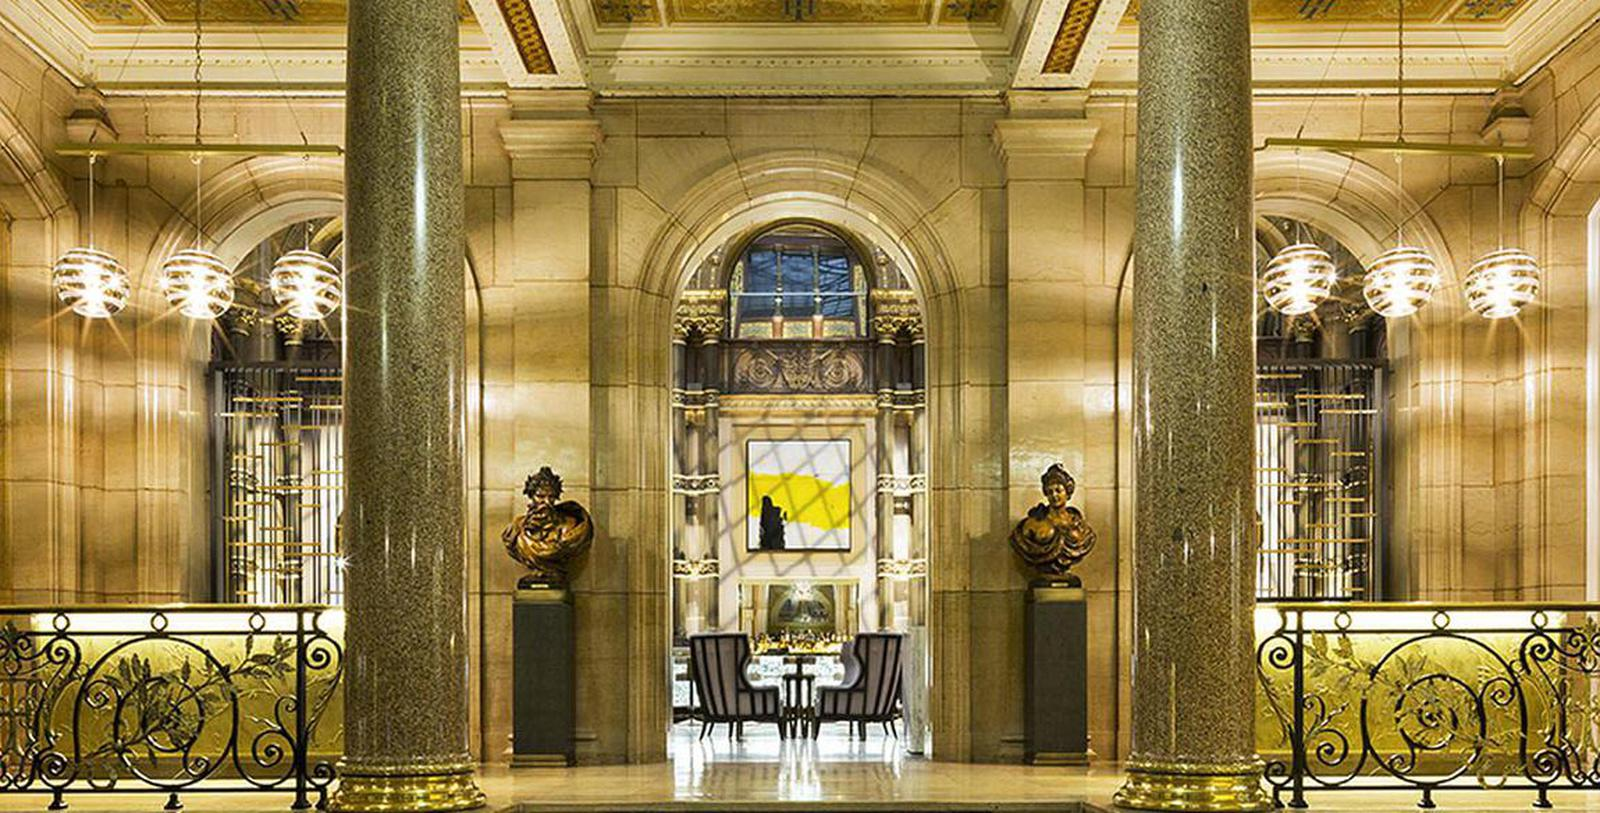 Interior lobby of the Hilton Paris Opera in France.